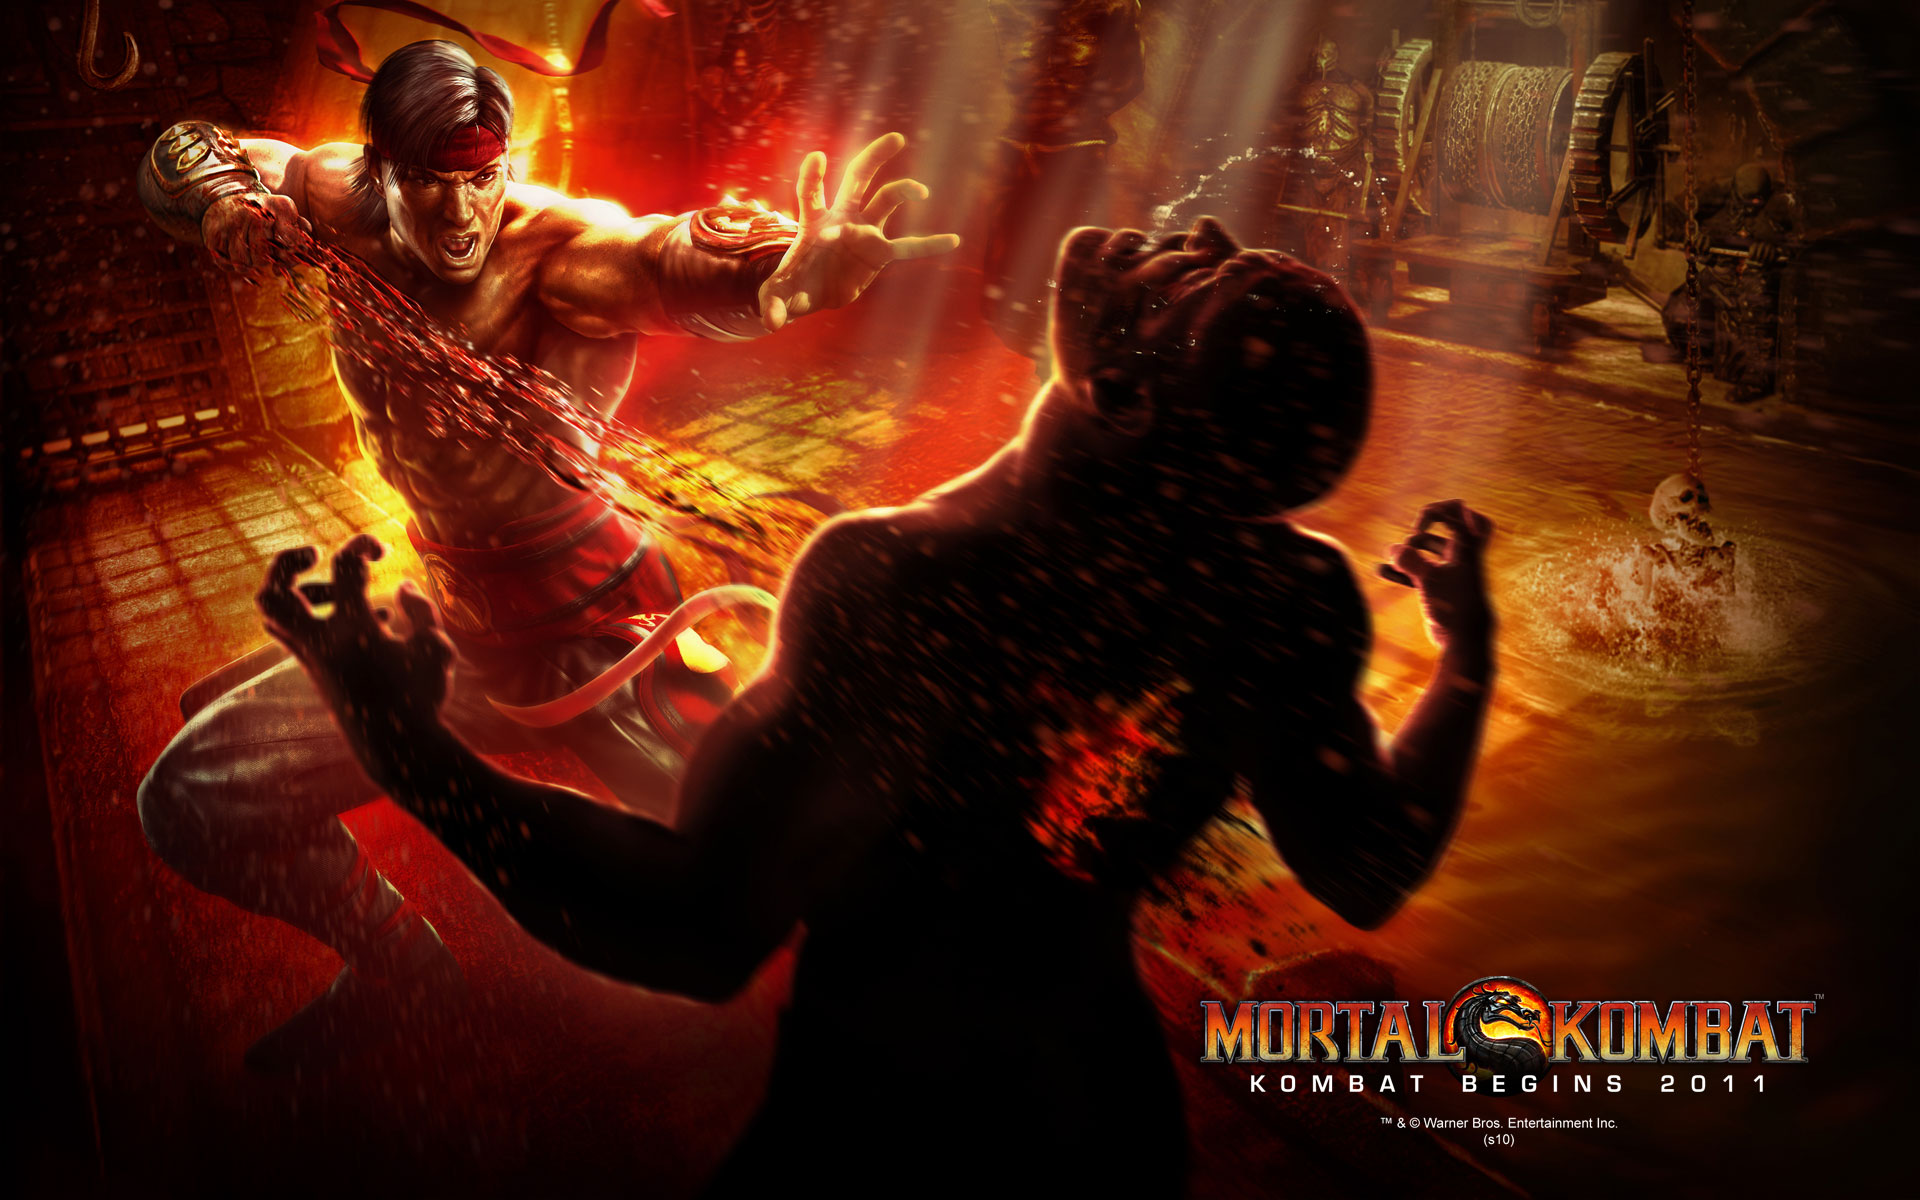 <b>Mortal Kombat</b> 9 (2011): <b>Cheats</b>, <b>Unlockables</b>, Fatalites, Babalities ...